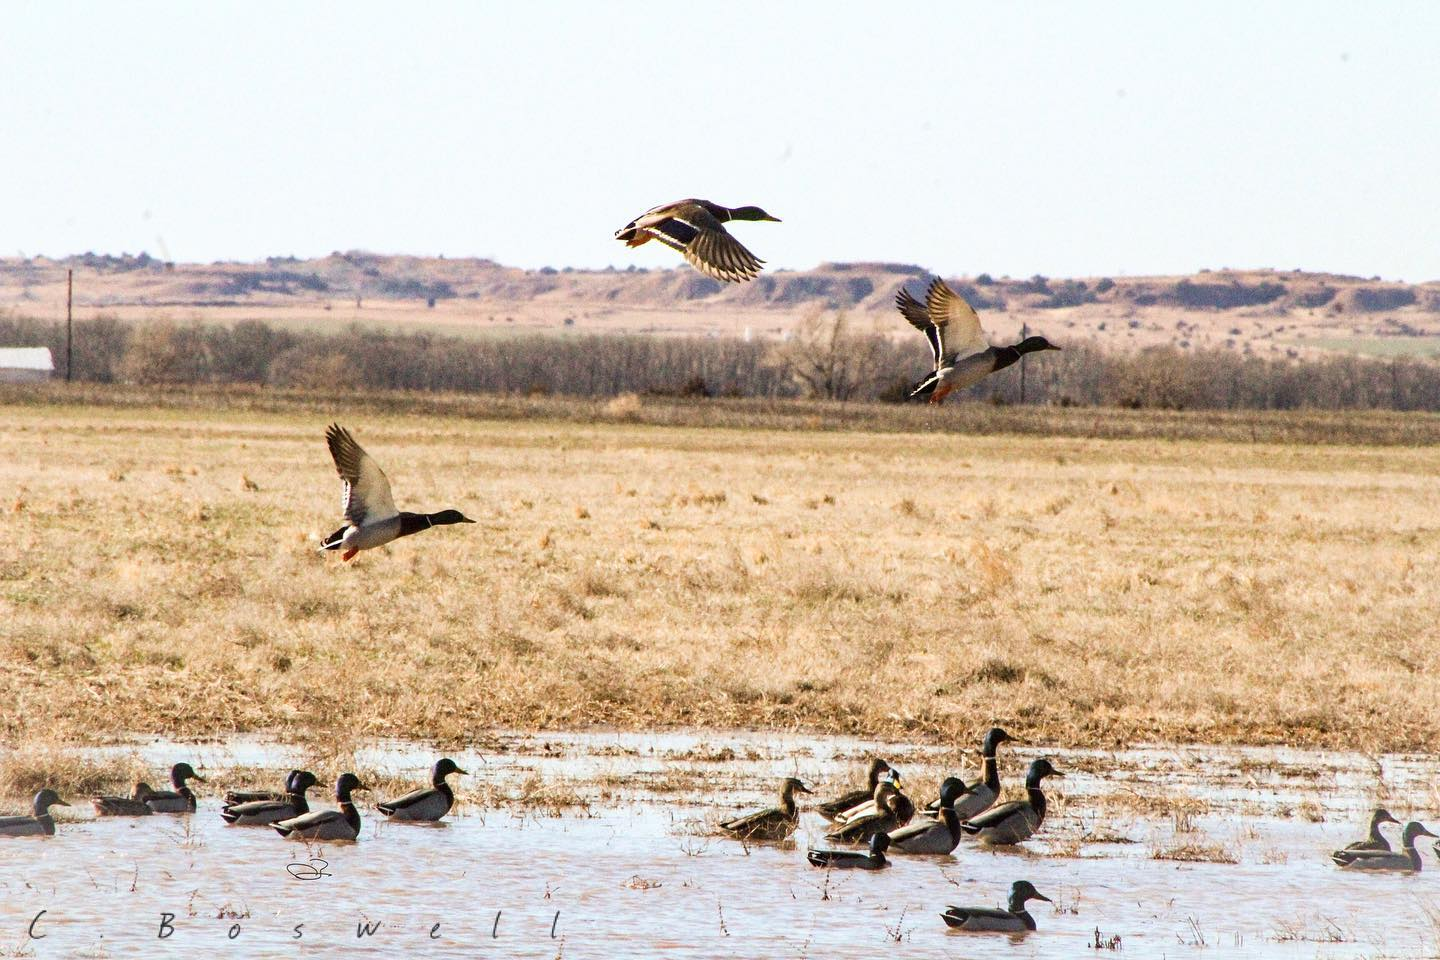 water-sheds-or-dry-field-duck-hunt-1556762640876377601